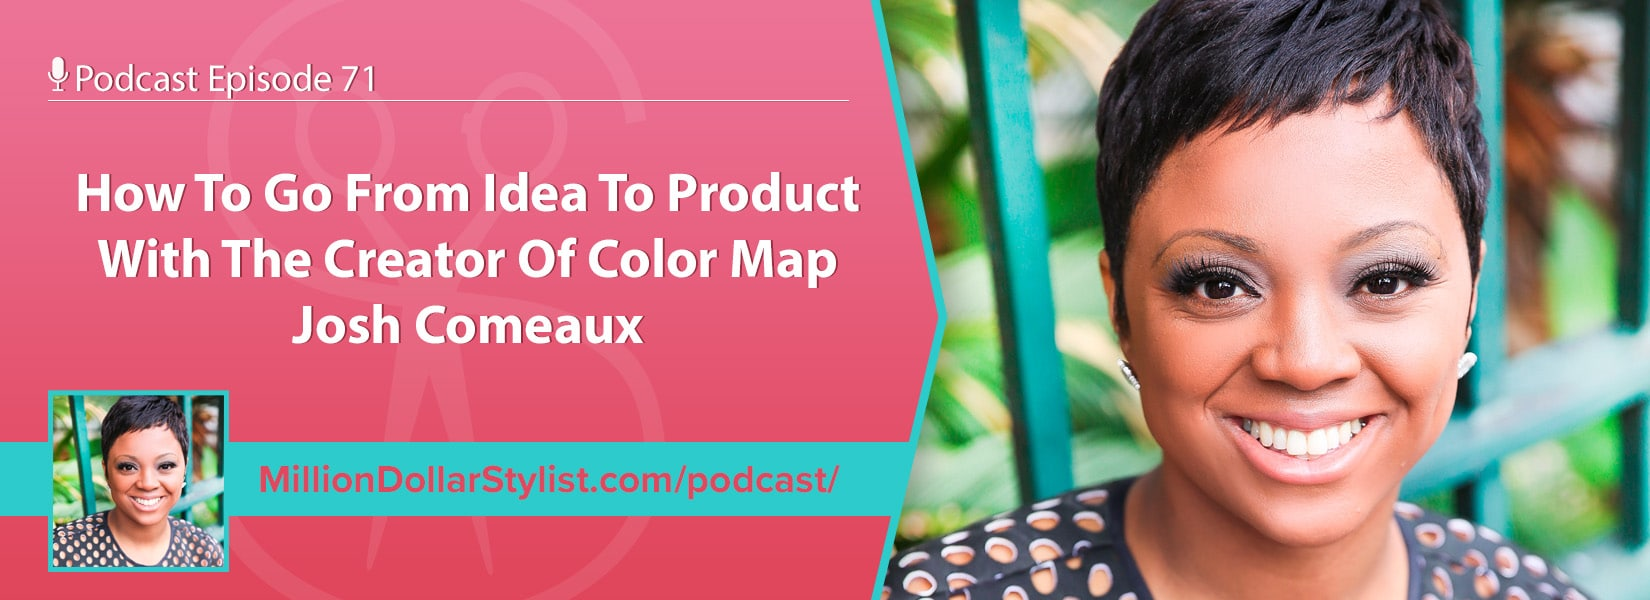 Episode 071 – How To Go From Idea To Product With The Creator Of Color Map Josh Comeaux 1